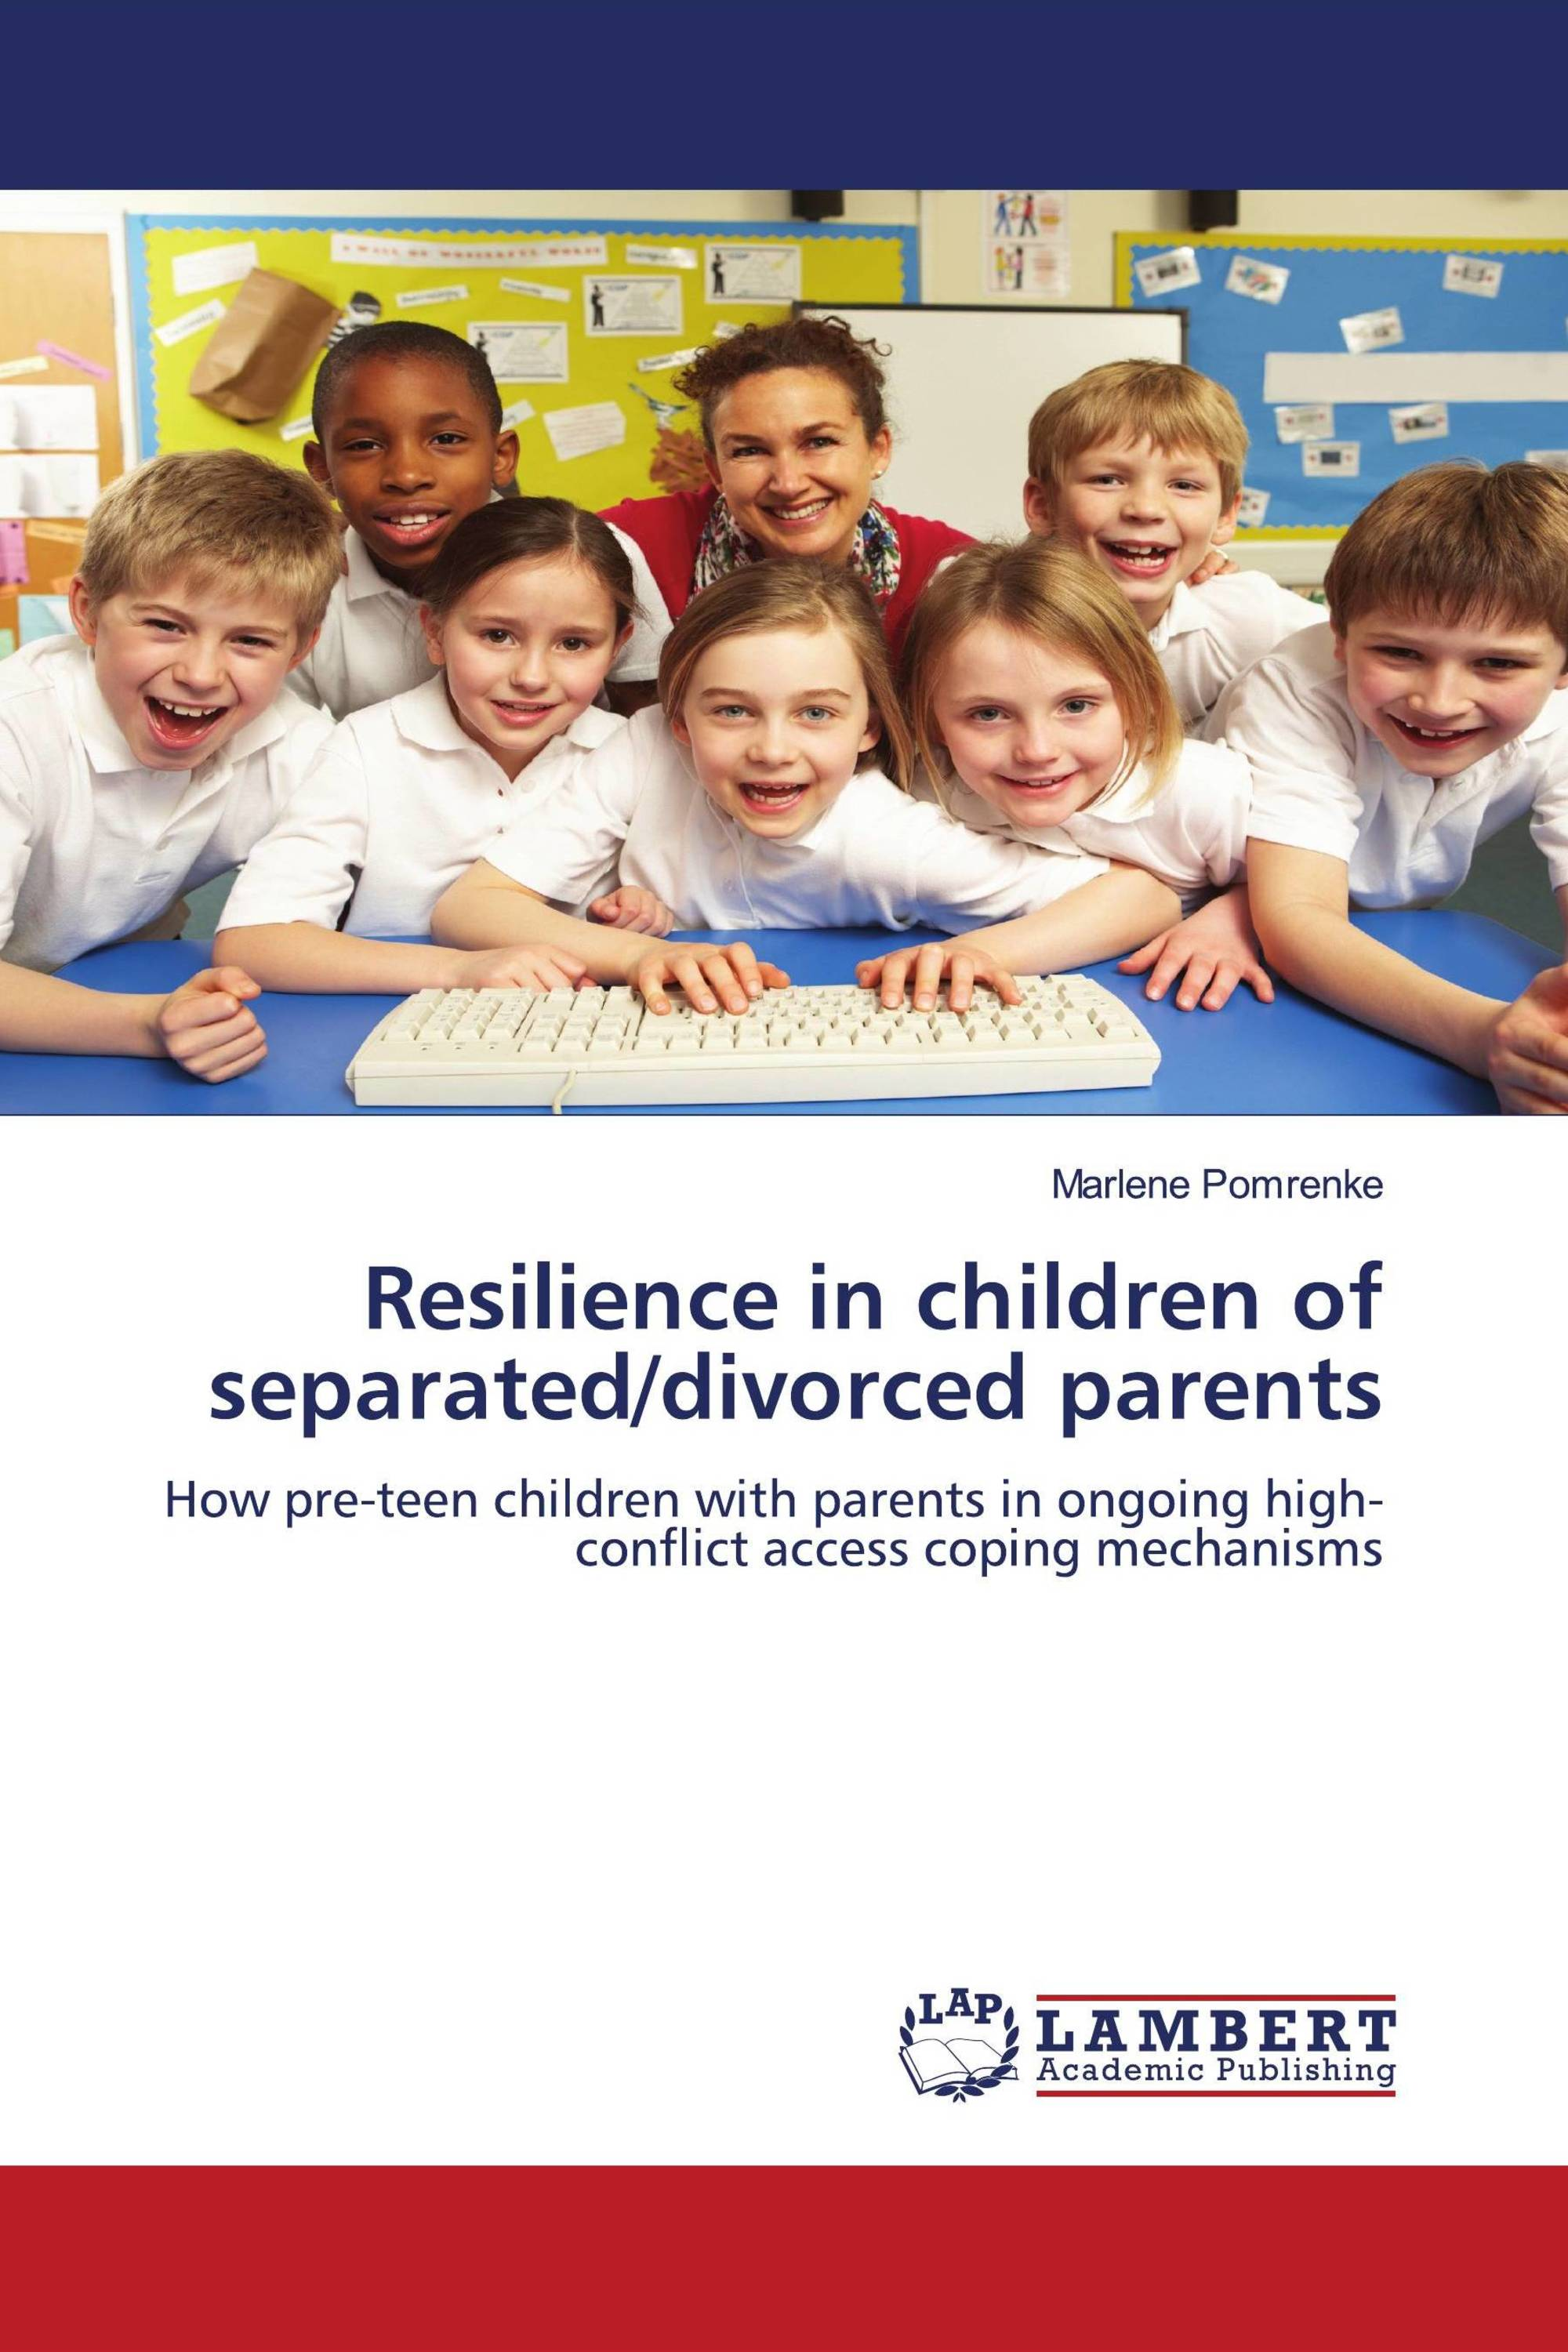 Resilience in children of separated/divorced parents